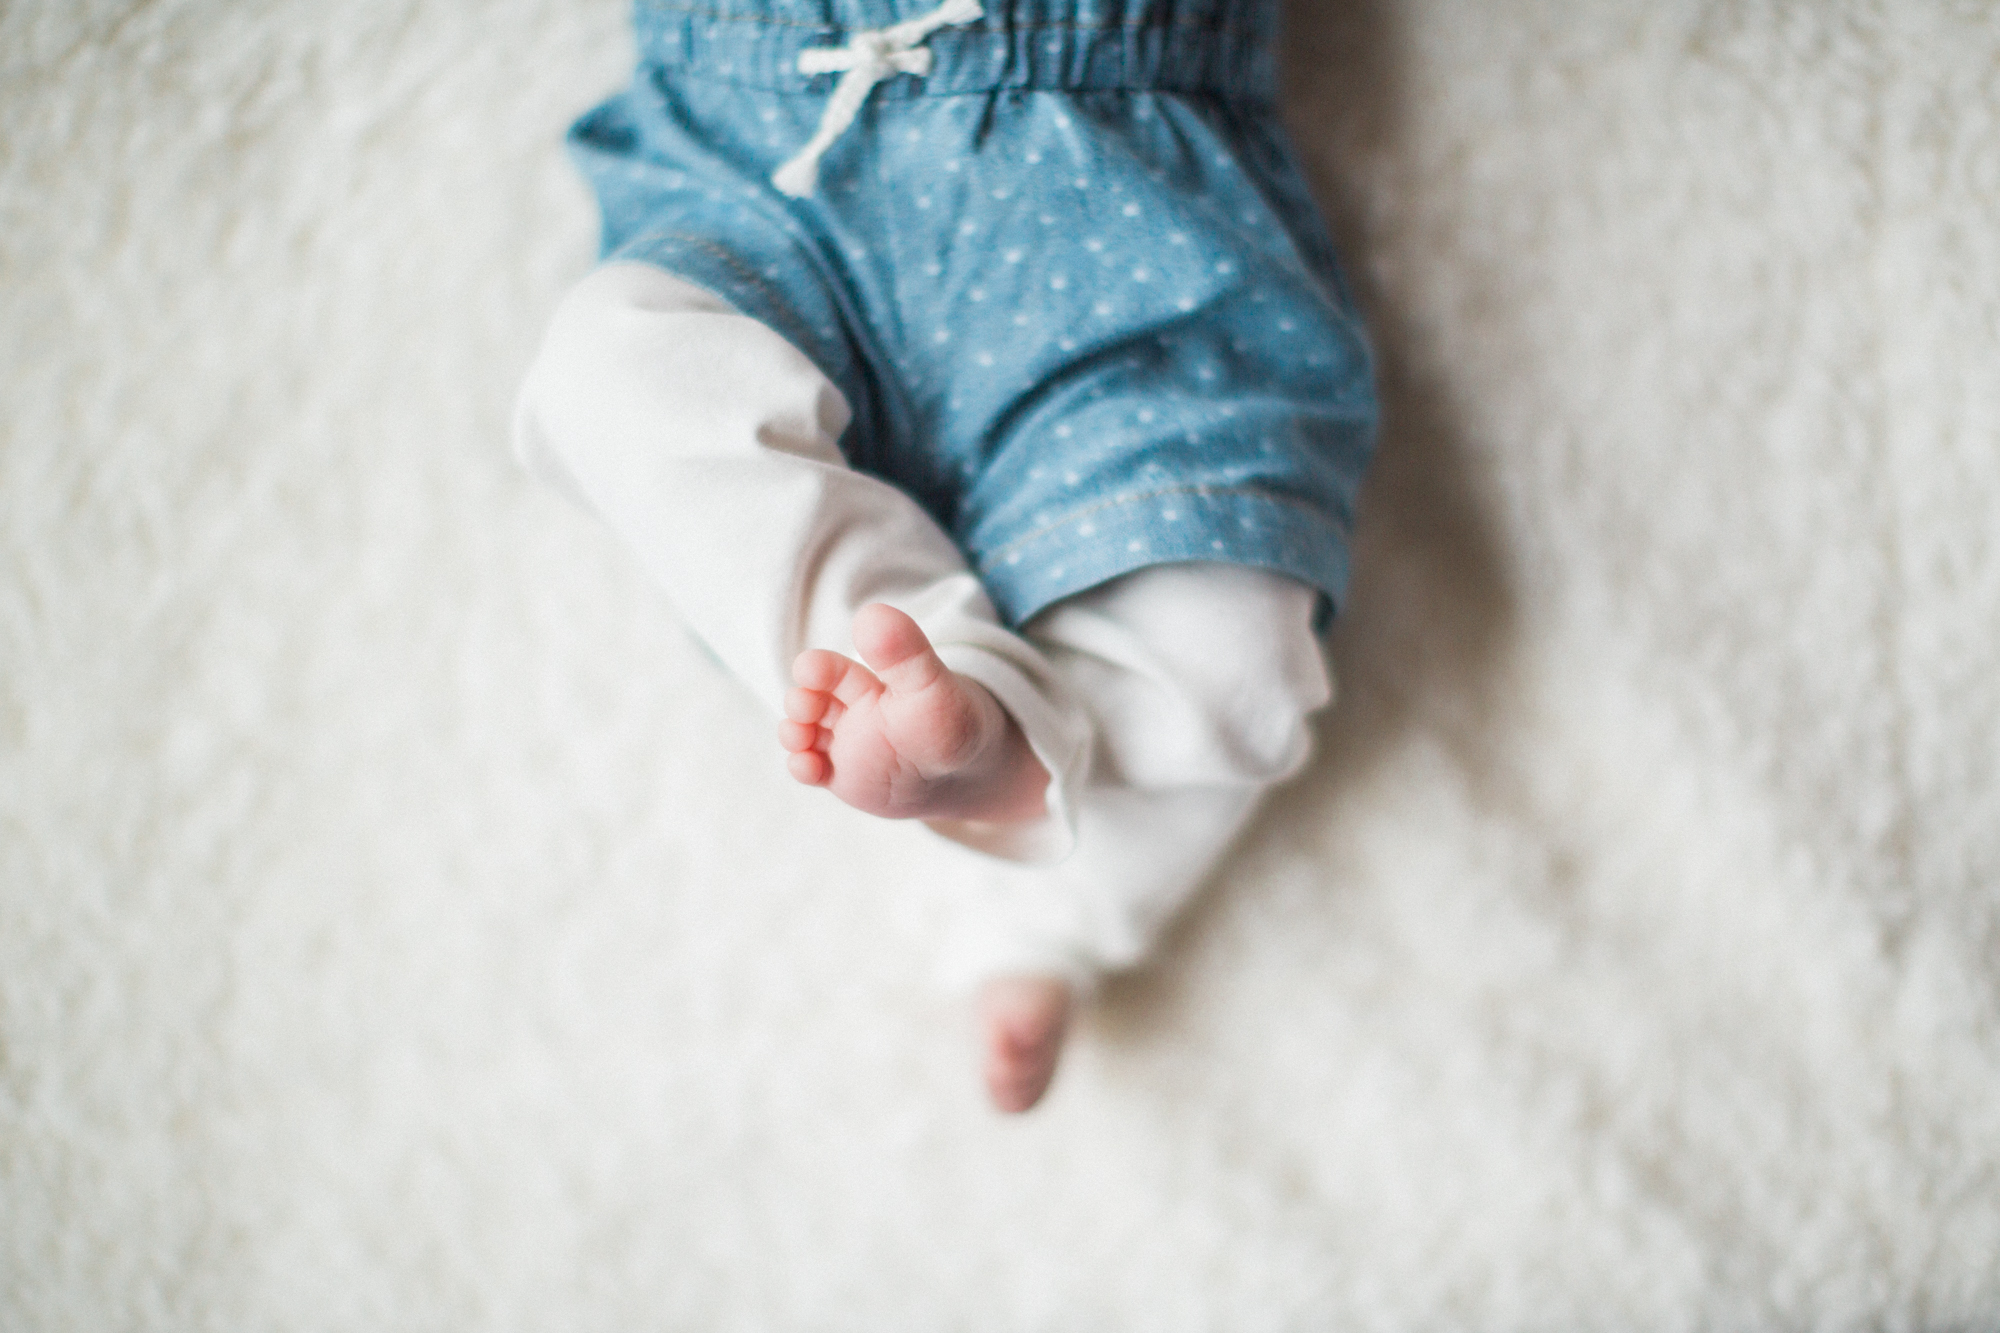 calgary-newborn-session-photography-photographer-pastels-baby-girl-6.jpg